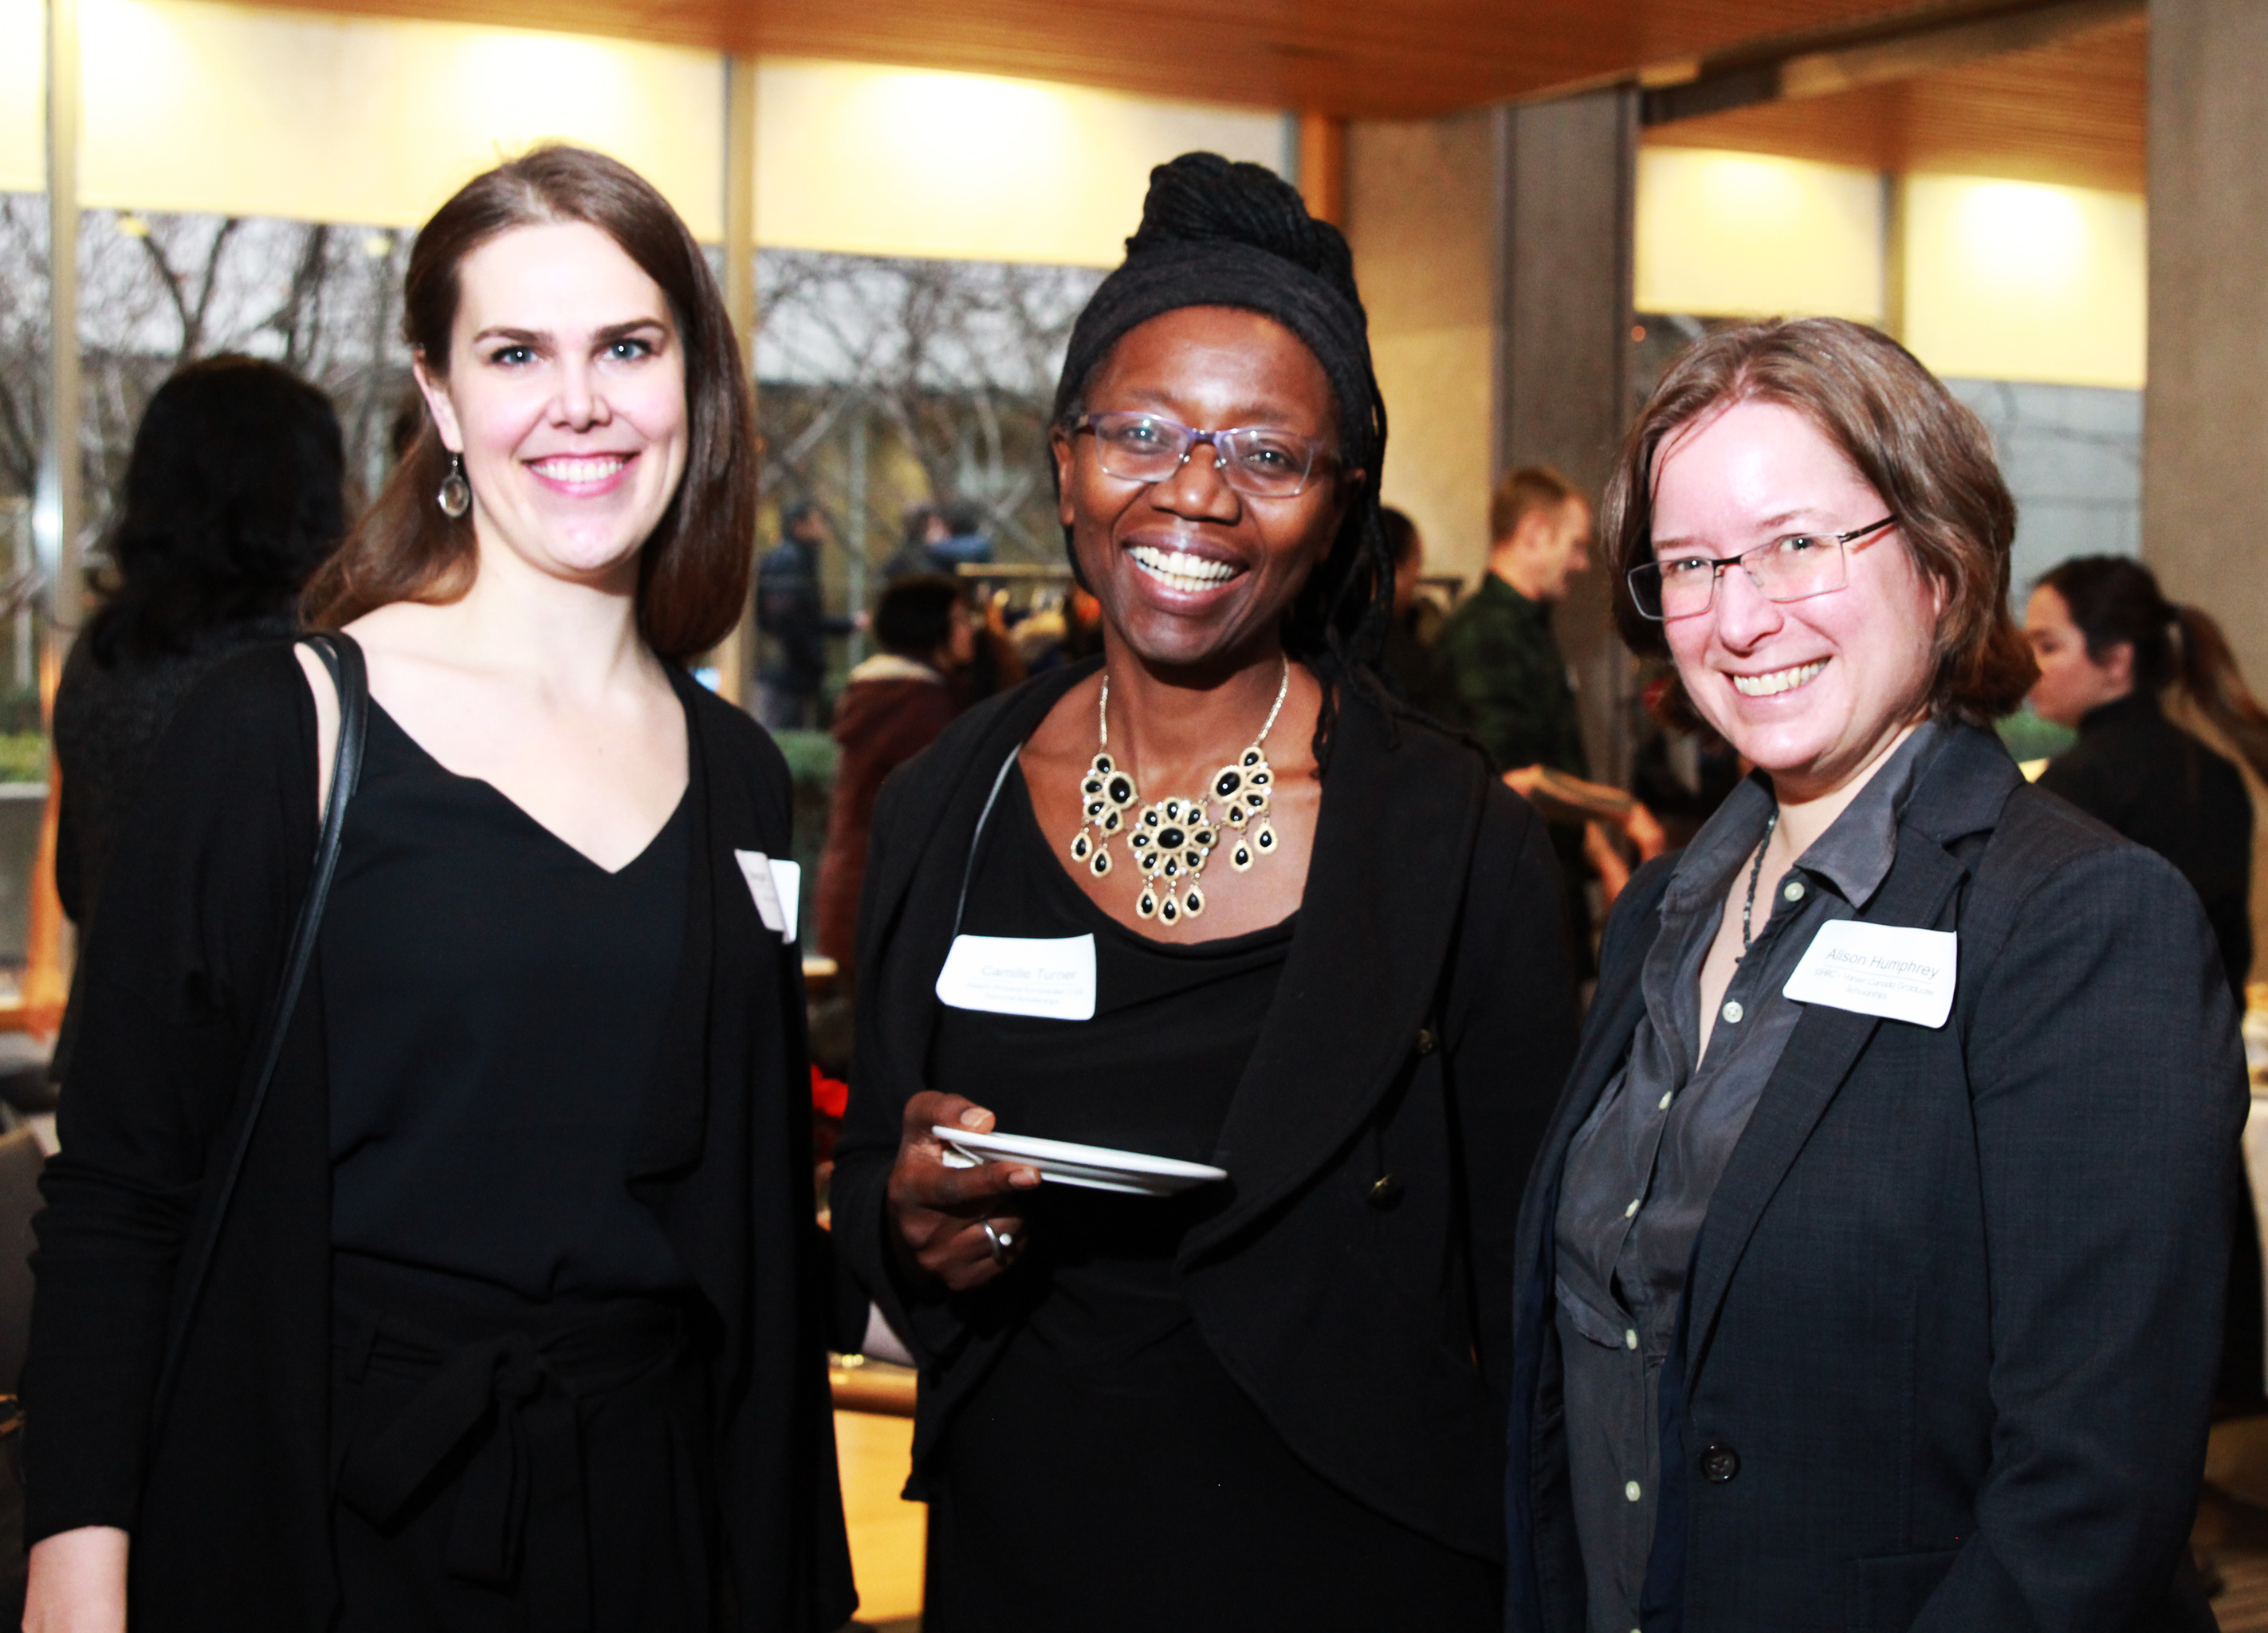 photo of three women who were attending the scholar's reception as students